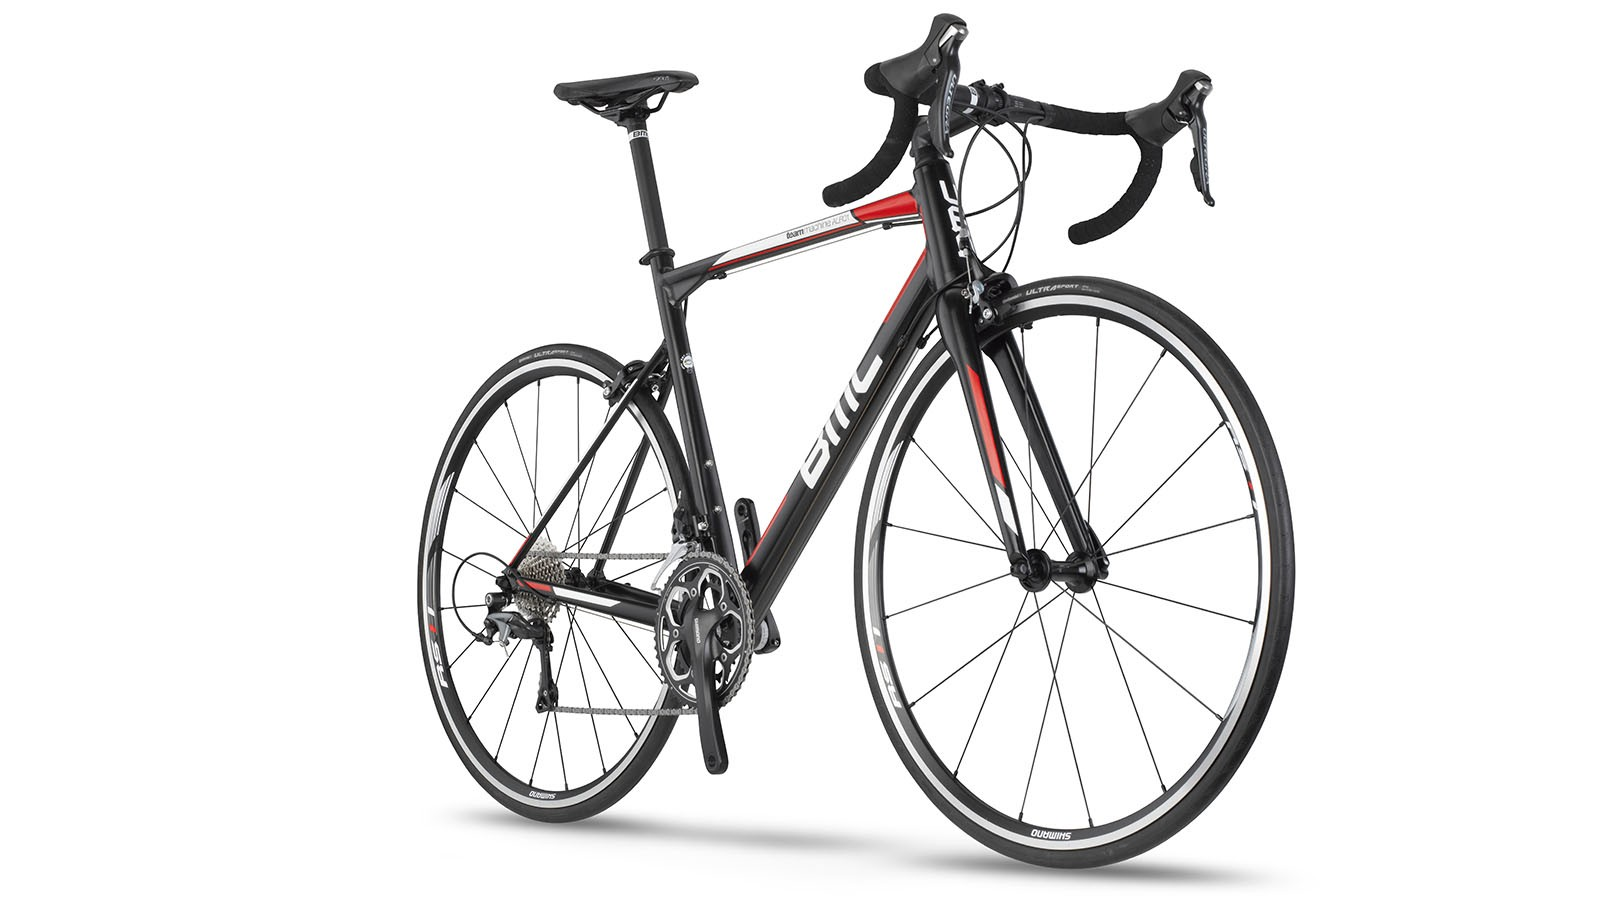 The BMC ALR01 shares much of its DNA with the carbon SLR series